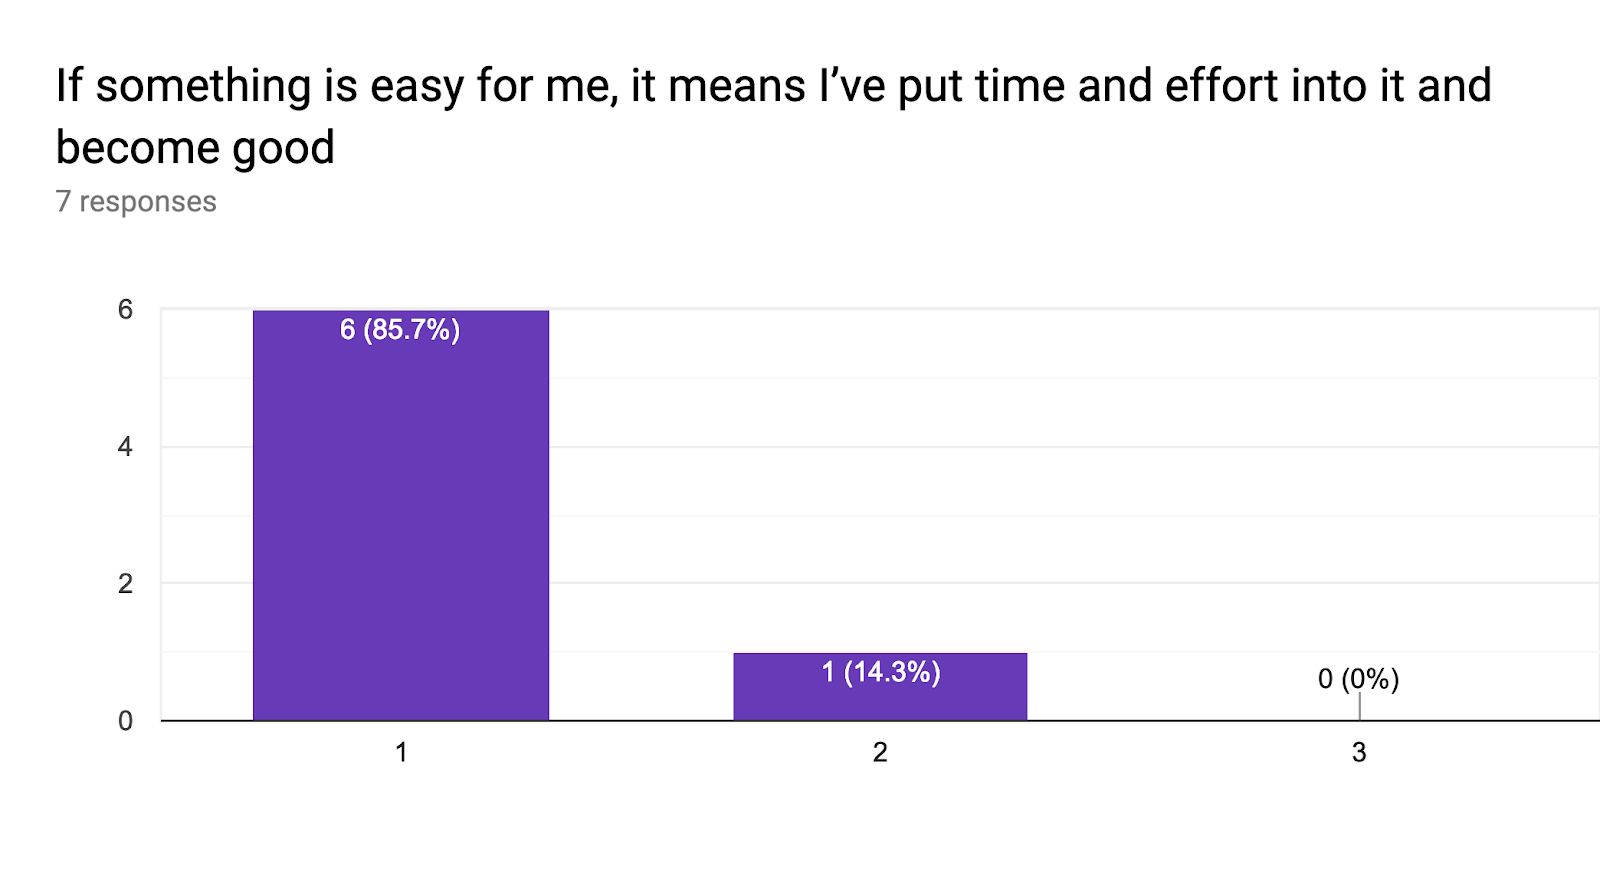 Forms response chart. Question title: If something is easy for me, it means I've put time and effort into it and become good. Number of responses: 7 responses.